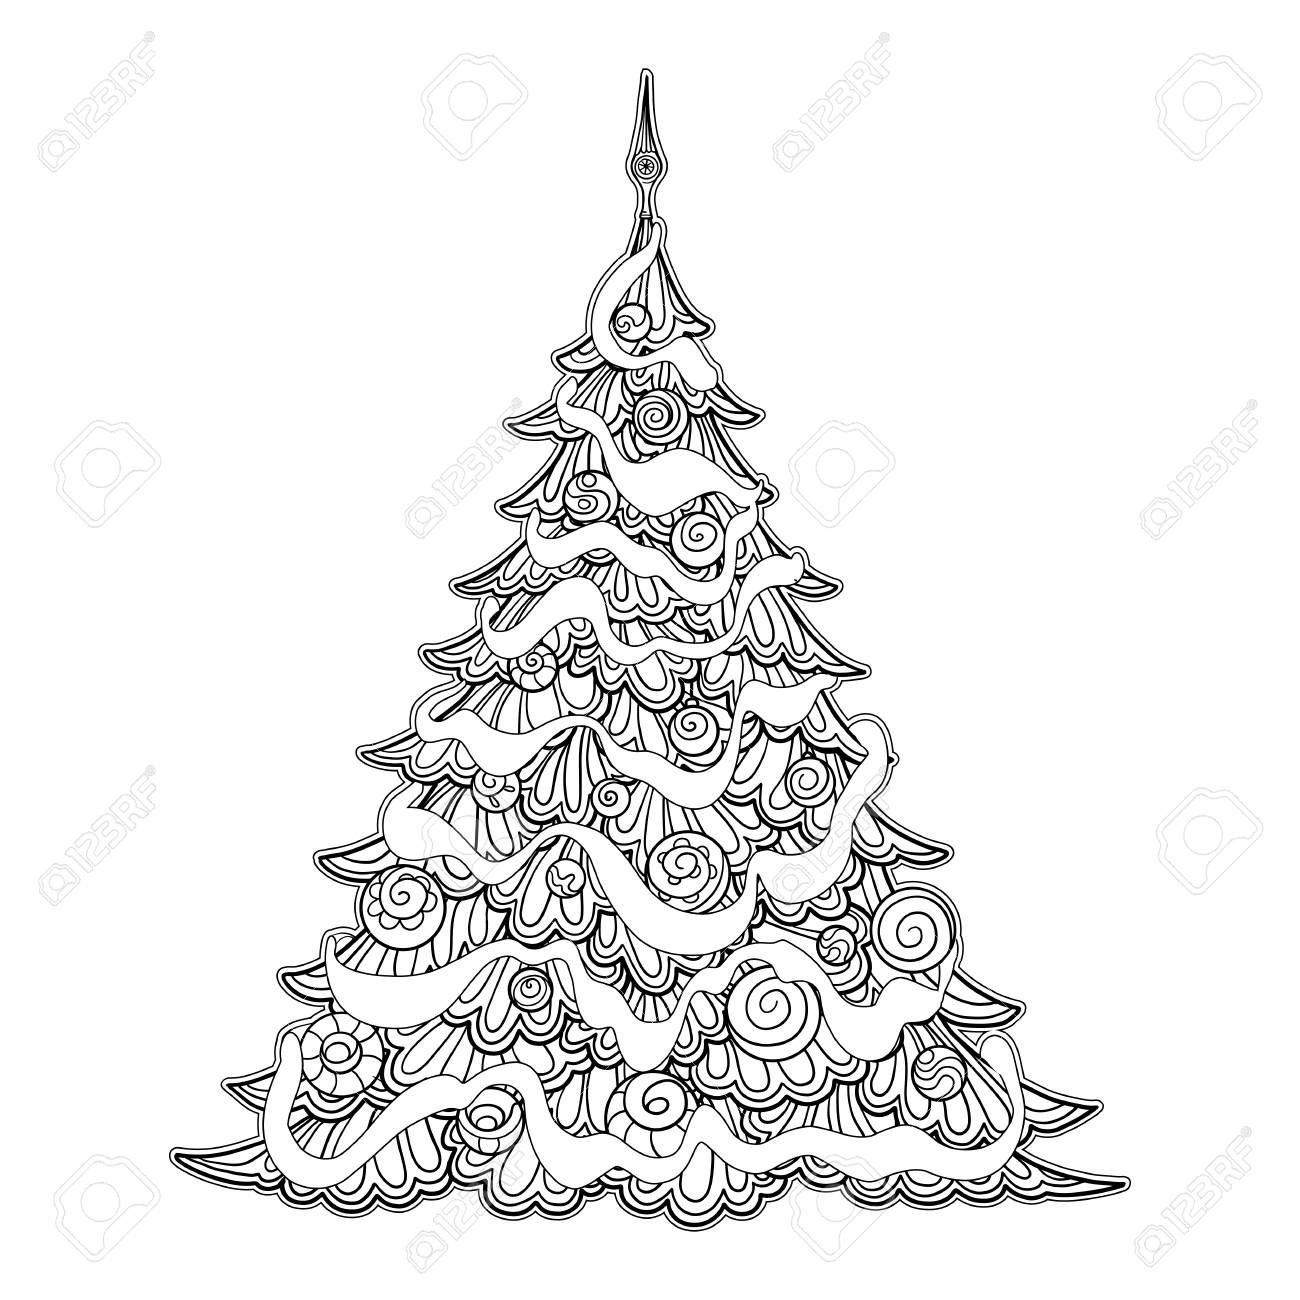 Christmas Tree Coloring Page.Christmas Tree Contour Drawing Good For Coloring Page For The